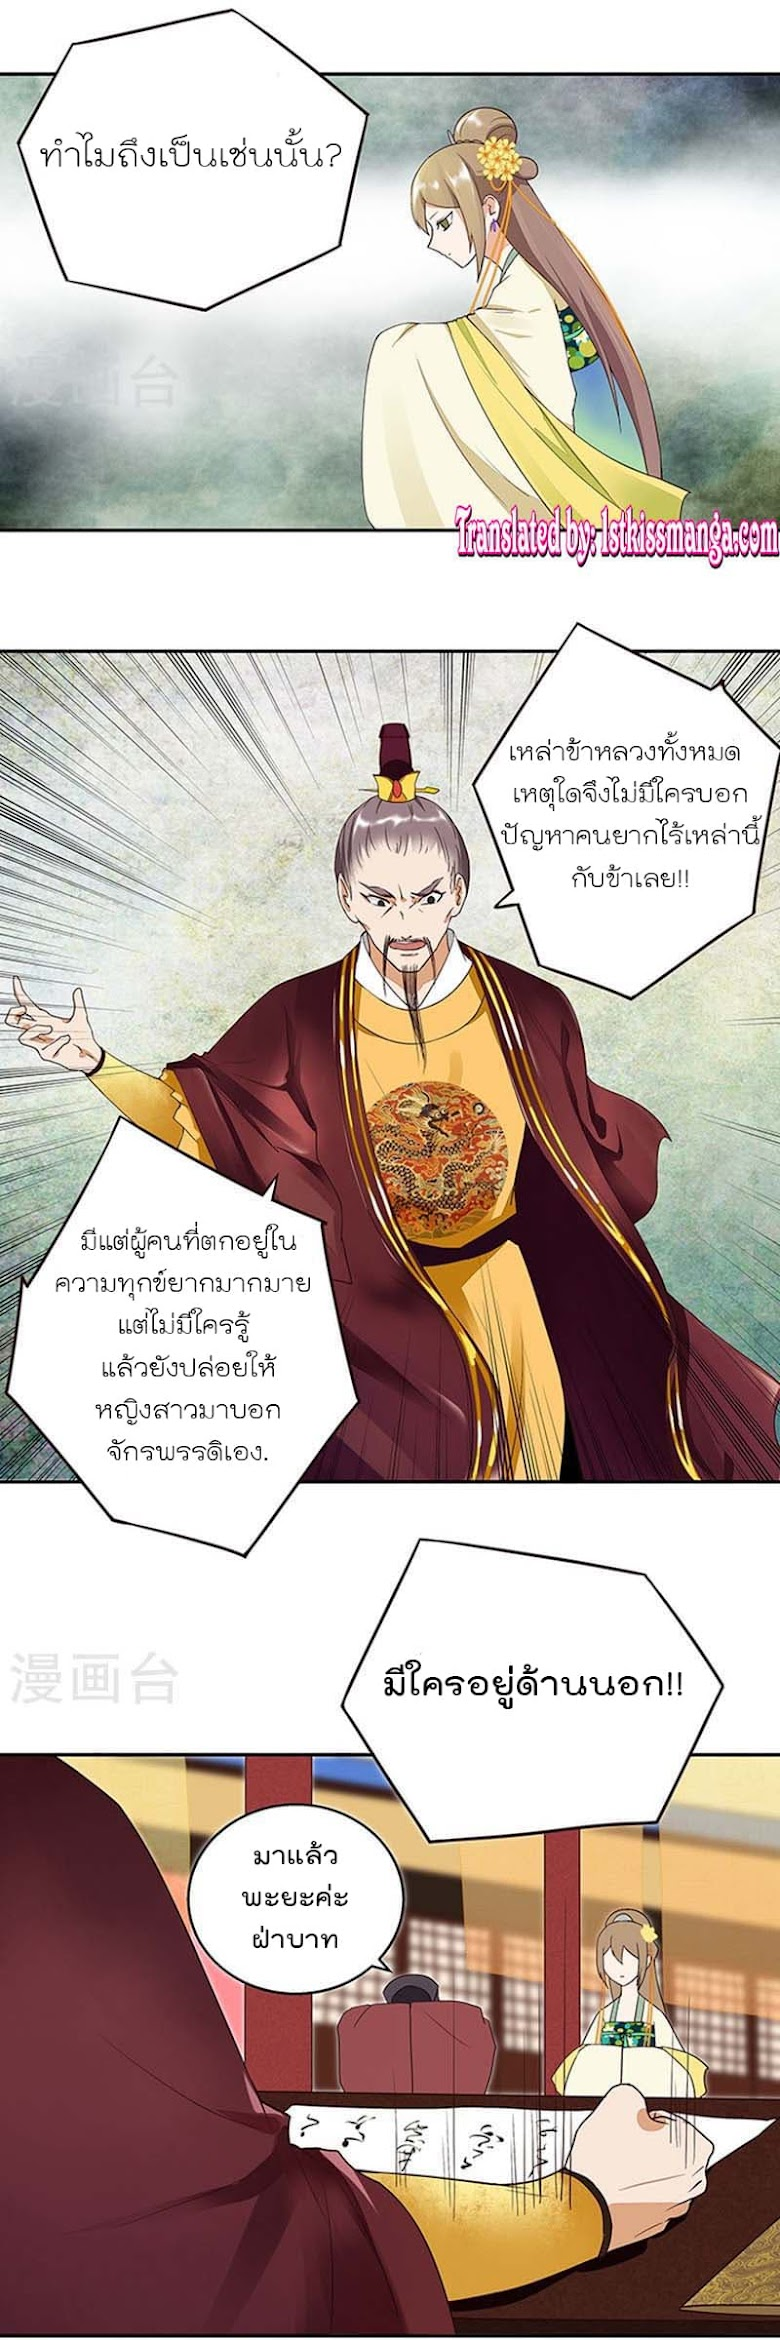 The Bloody Merchant Empress and the Cold Husband s Forceful Doting - หน้า 2